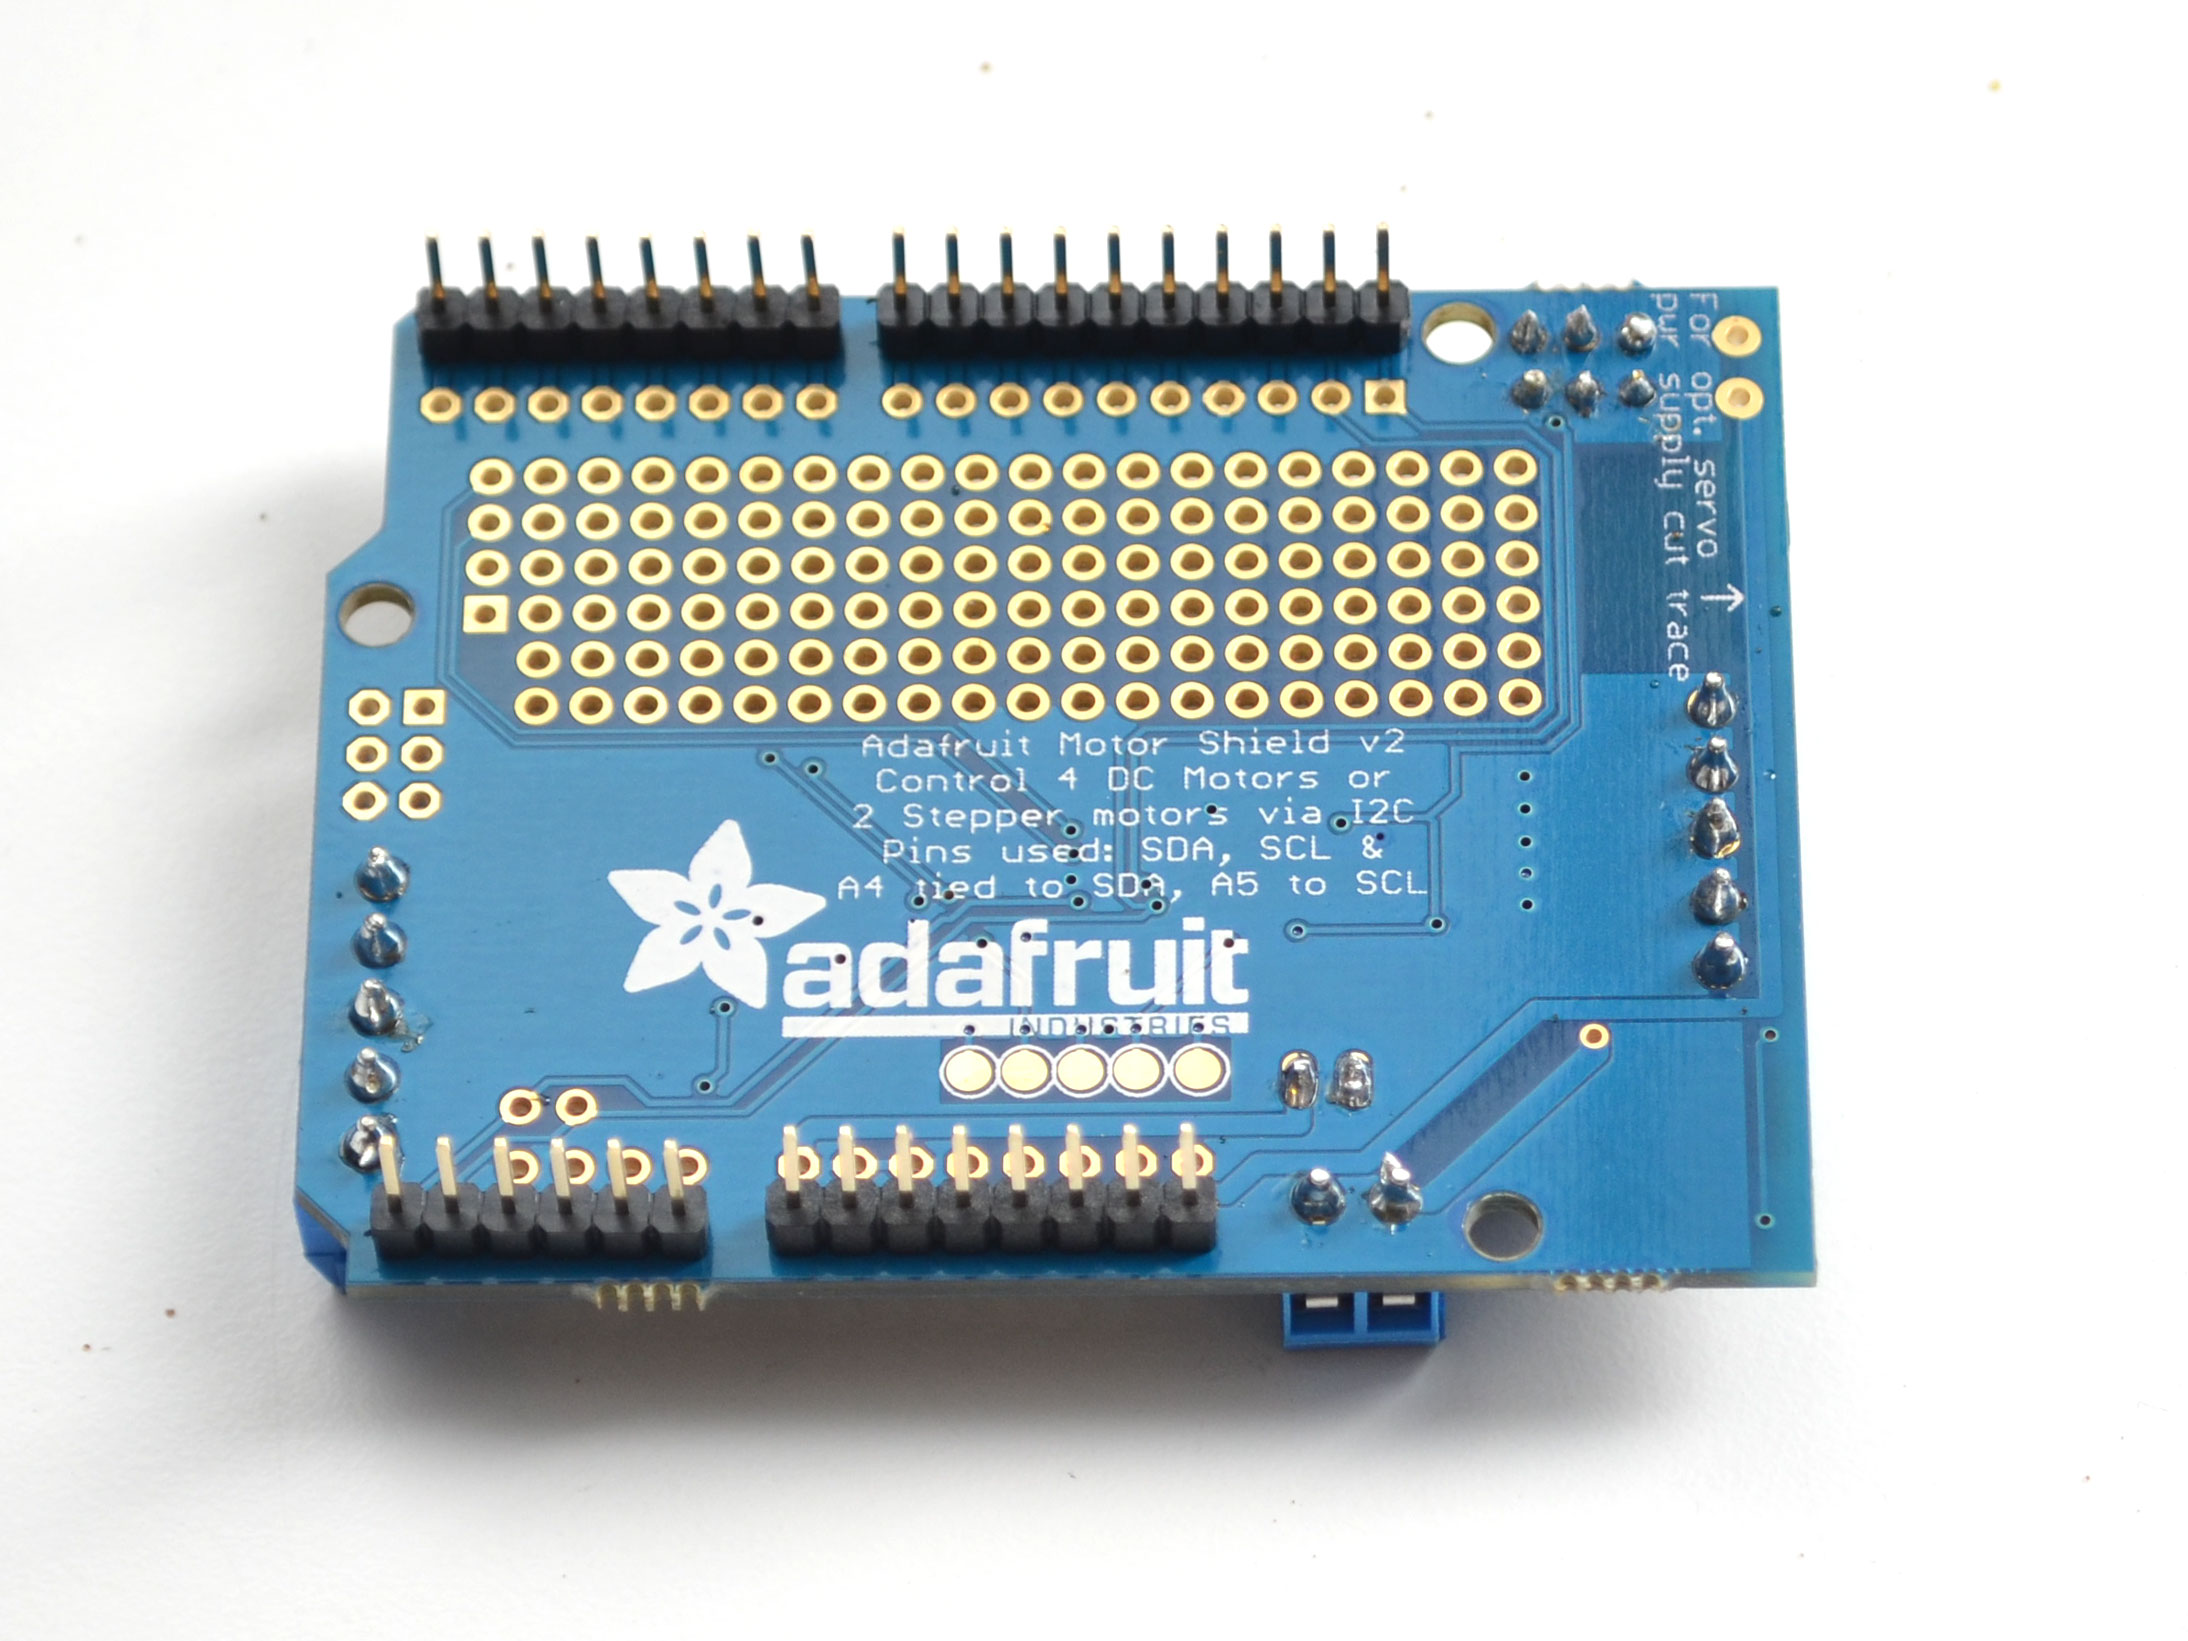 adafruit_products_pwrdone.jpg